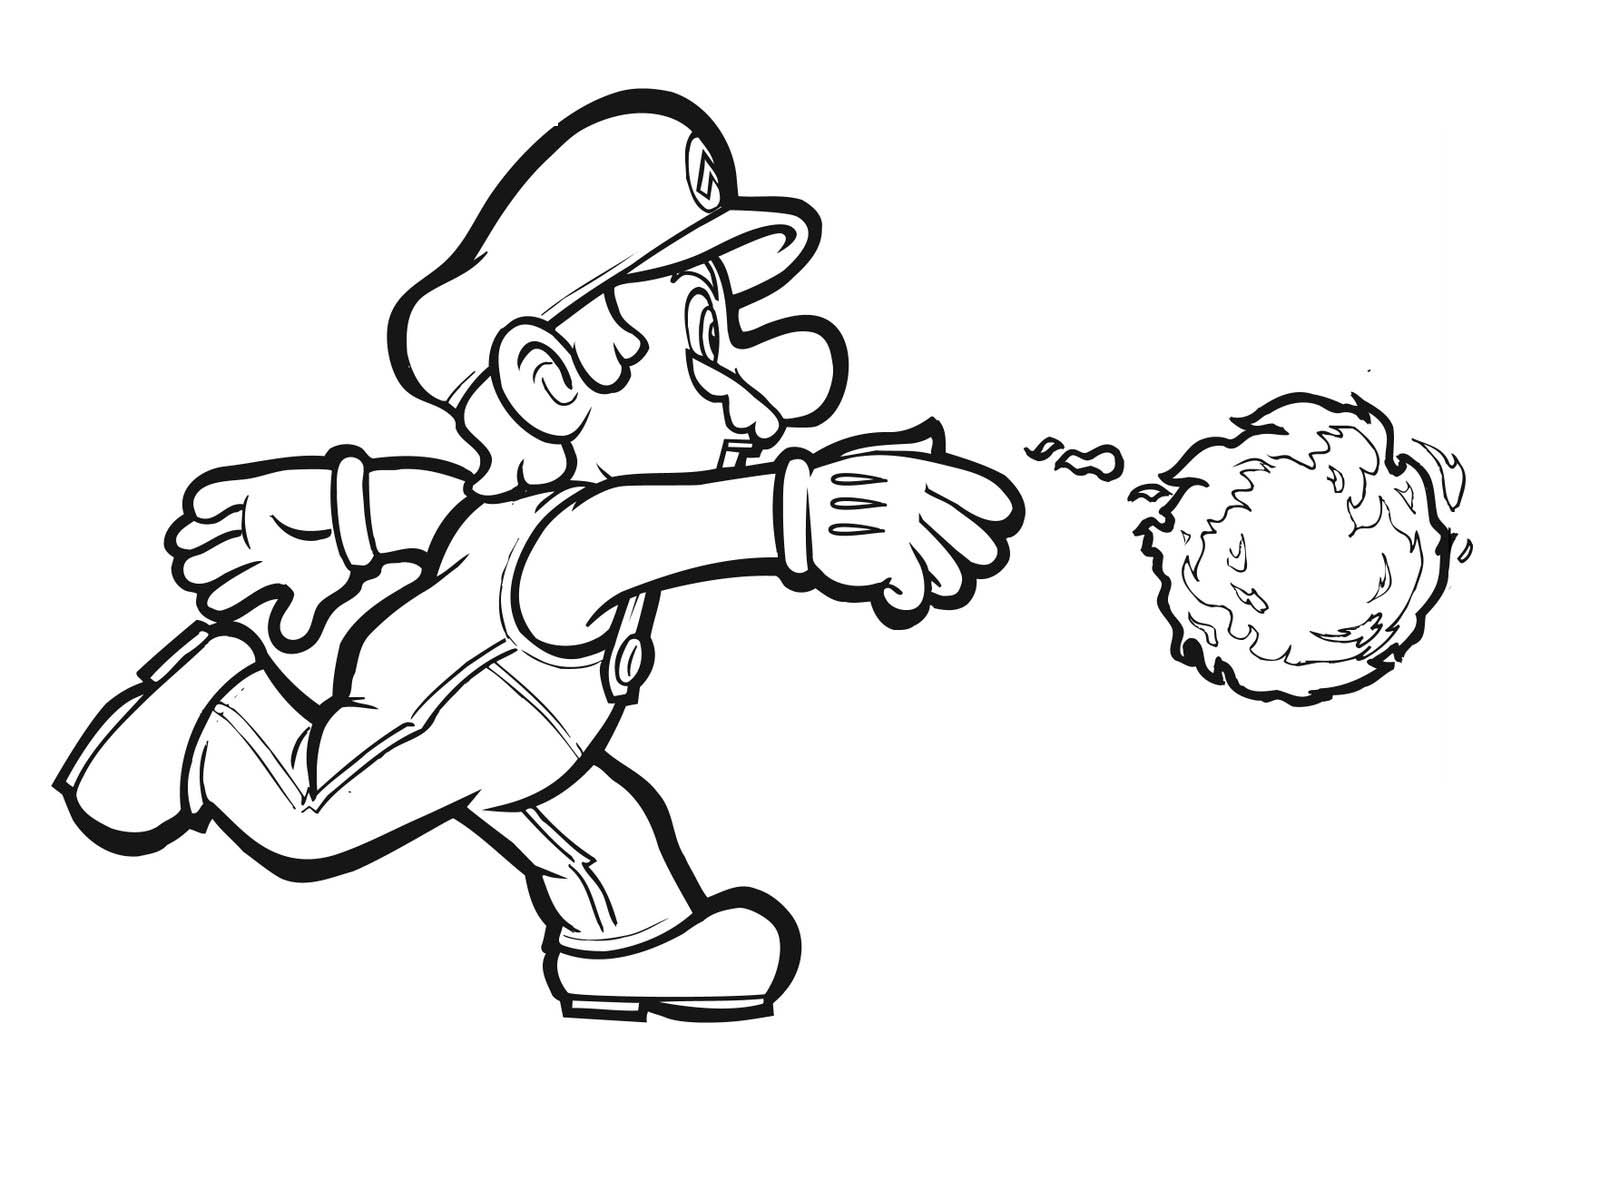 9 Free Mario Bros Coloring Pages For Kids Gt Gt Disney